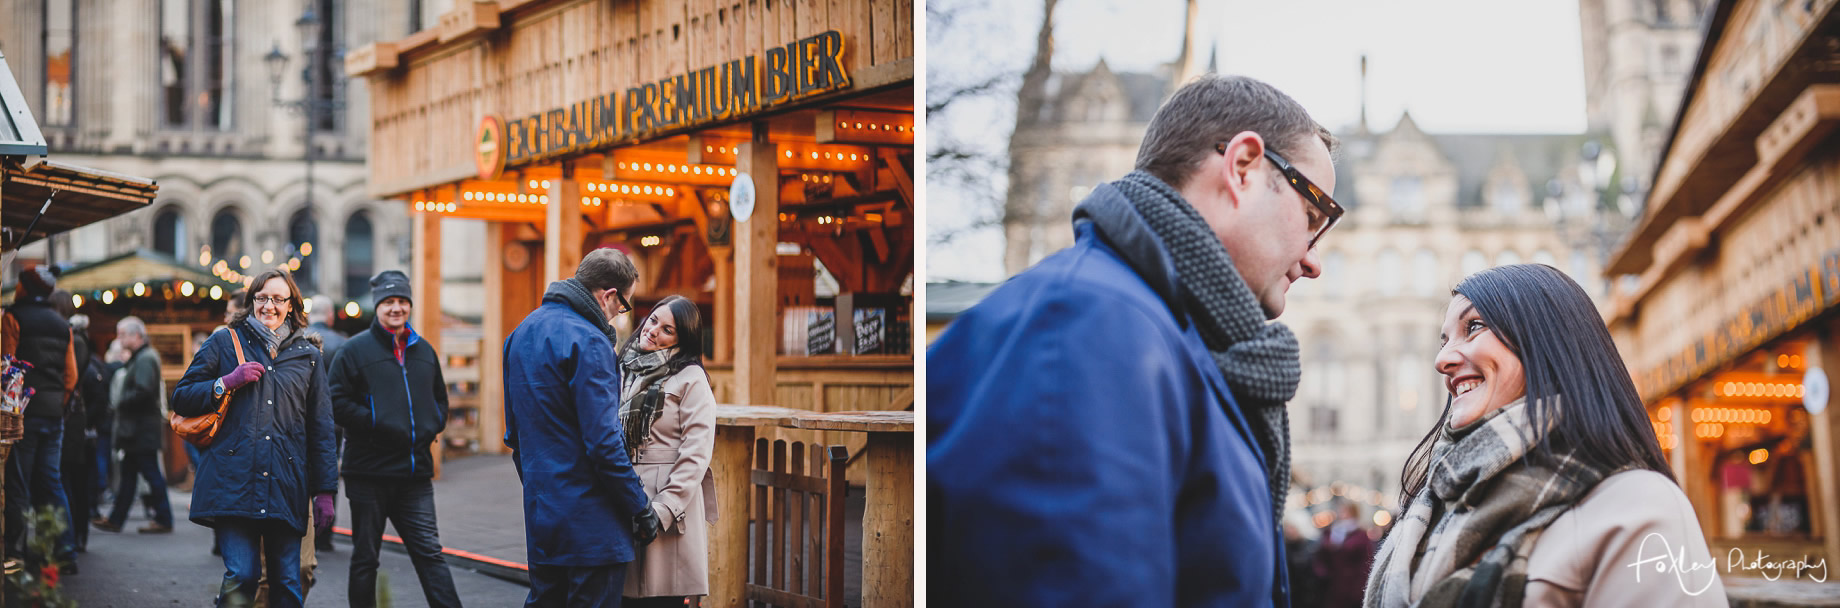 Angela and Andrew's Pre-Wedding Shoot at Manchester Christmas Markets 006